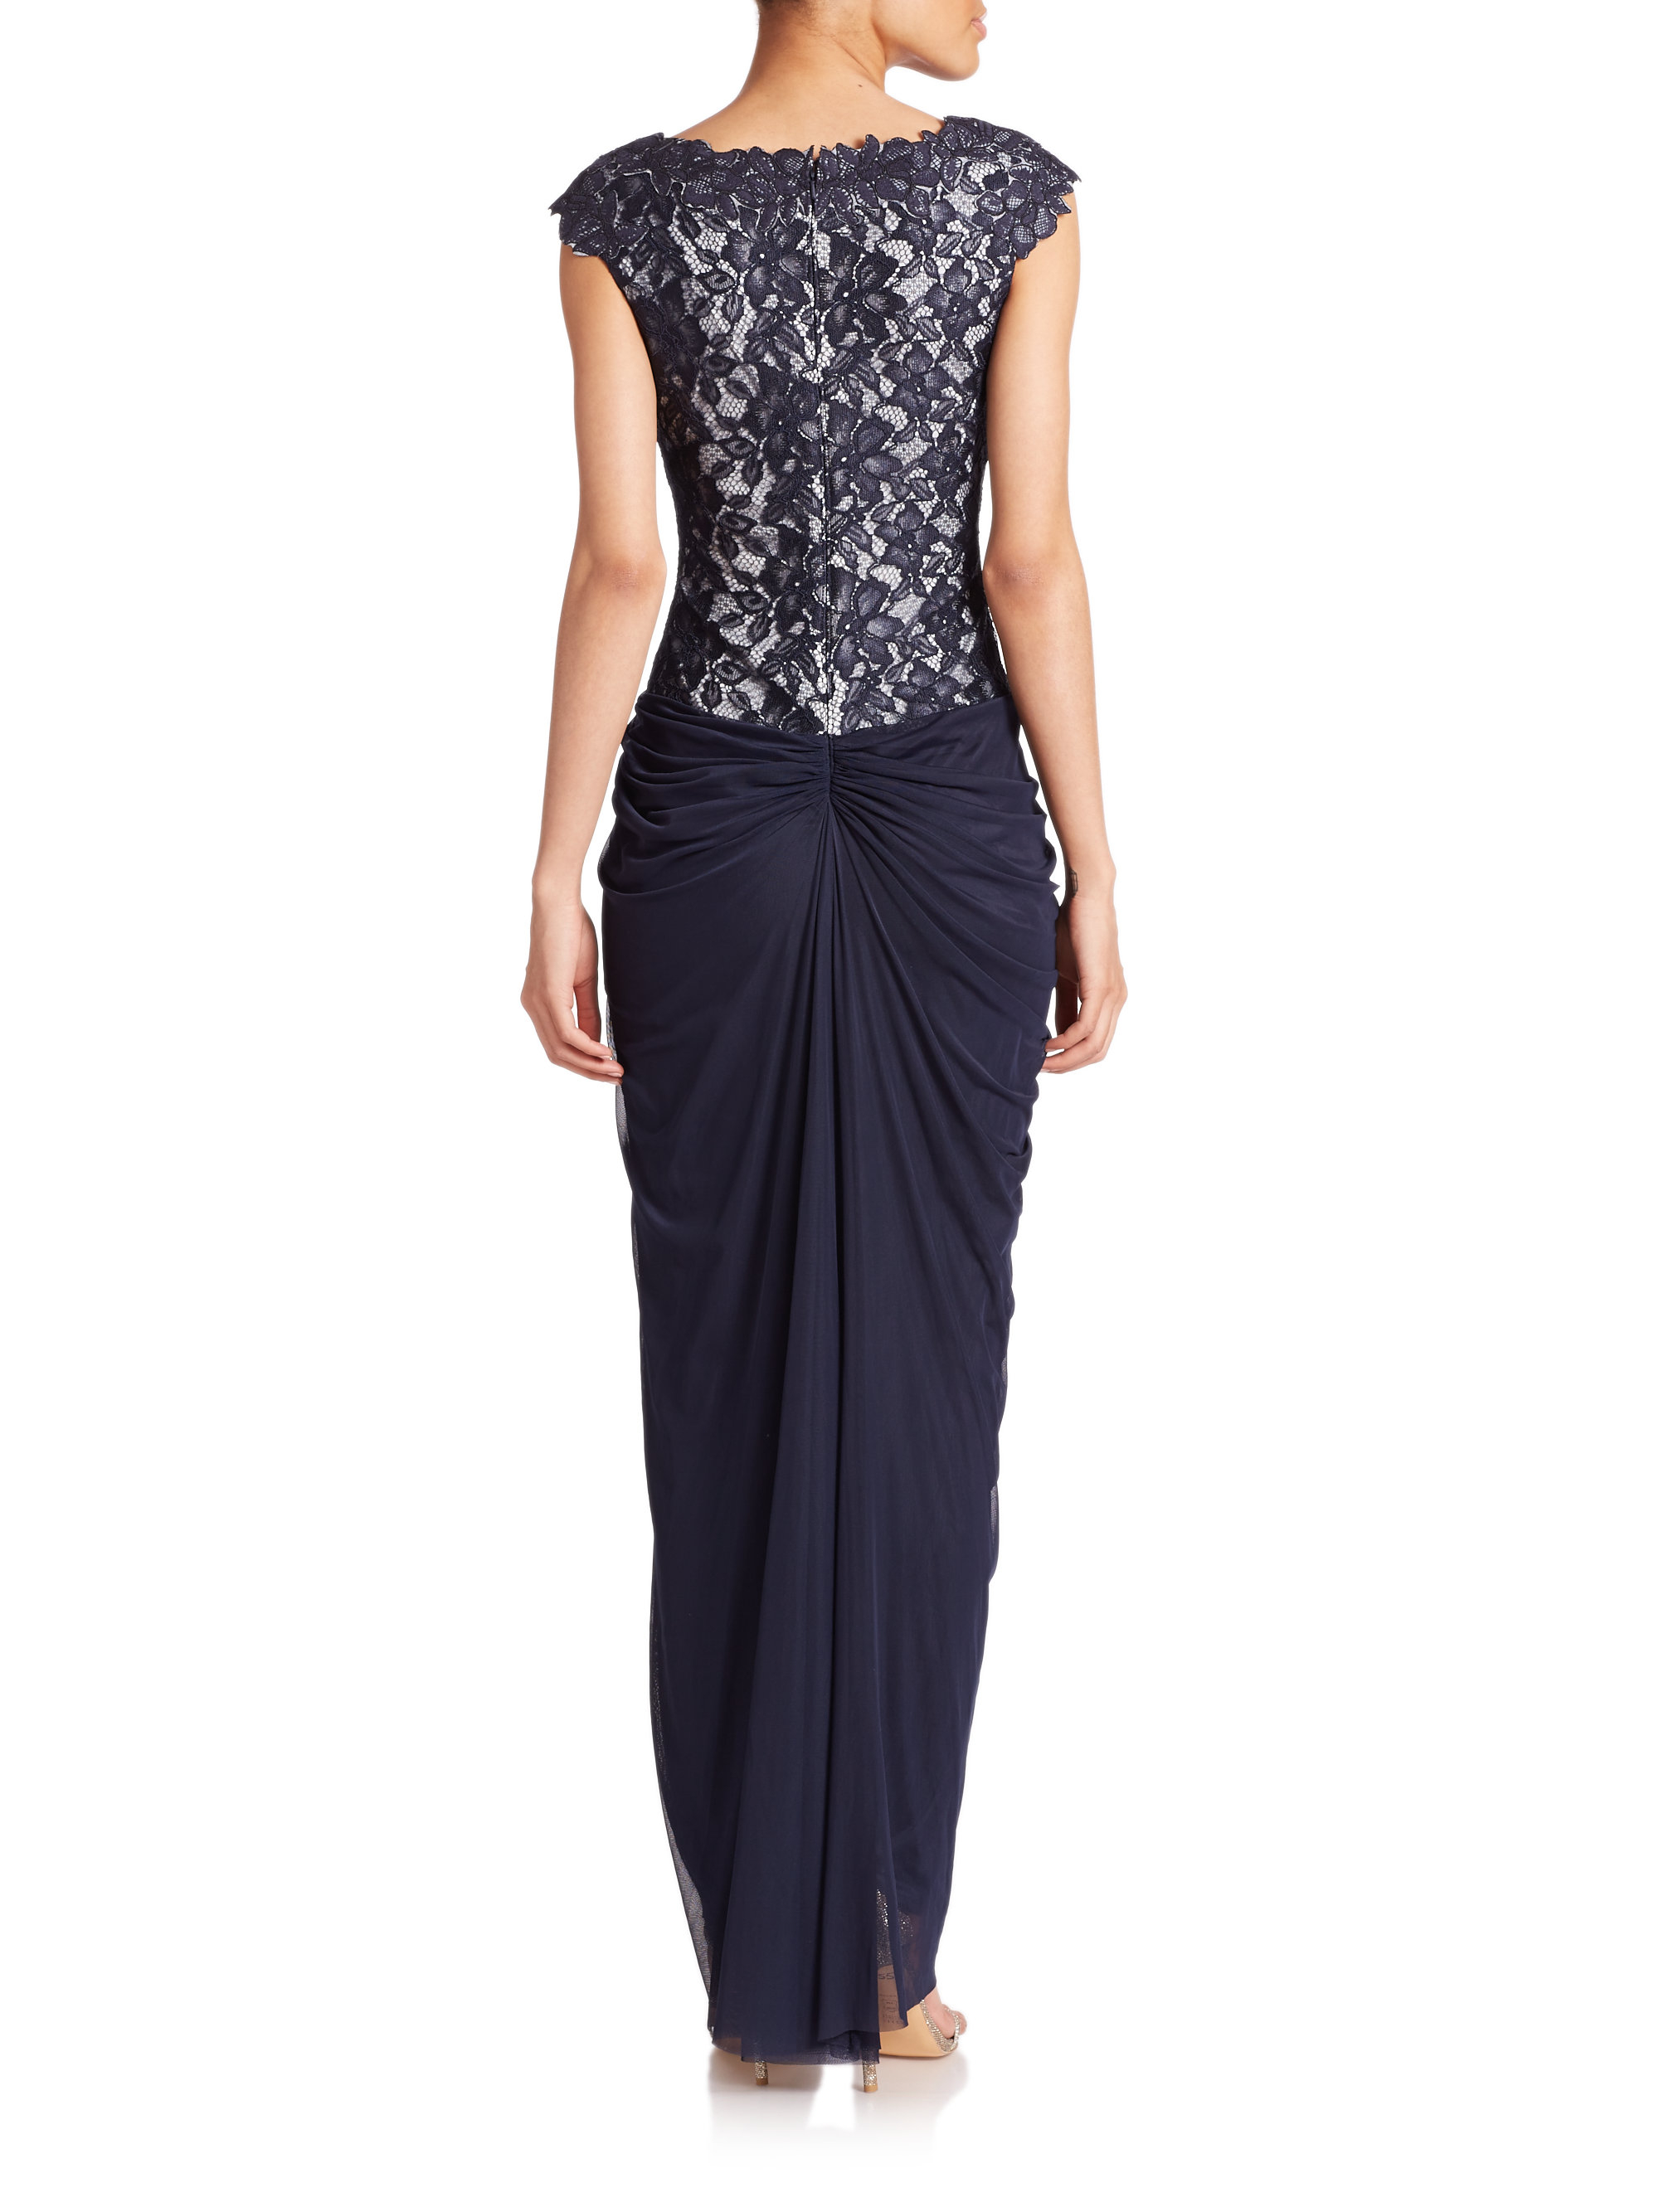 Lyst - Tadashi shoji Lace & Tulle Draped Combo Gown in Blue